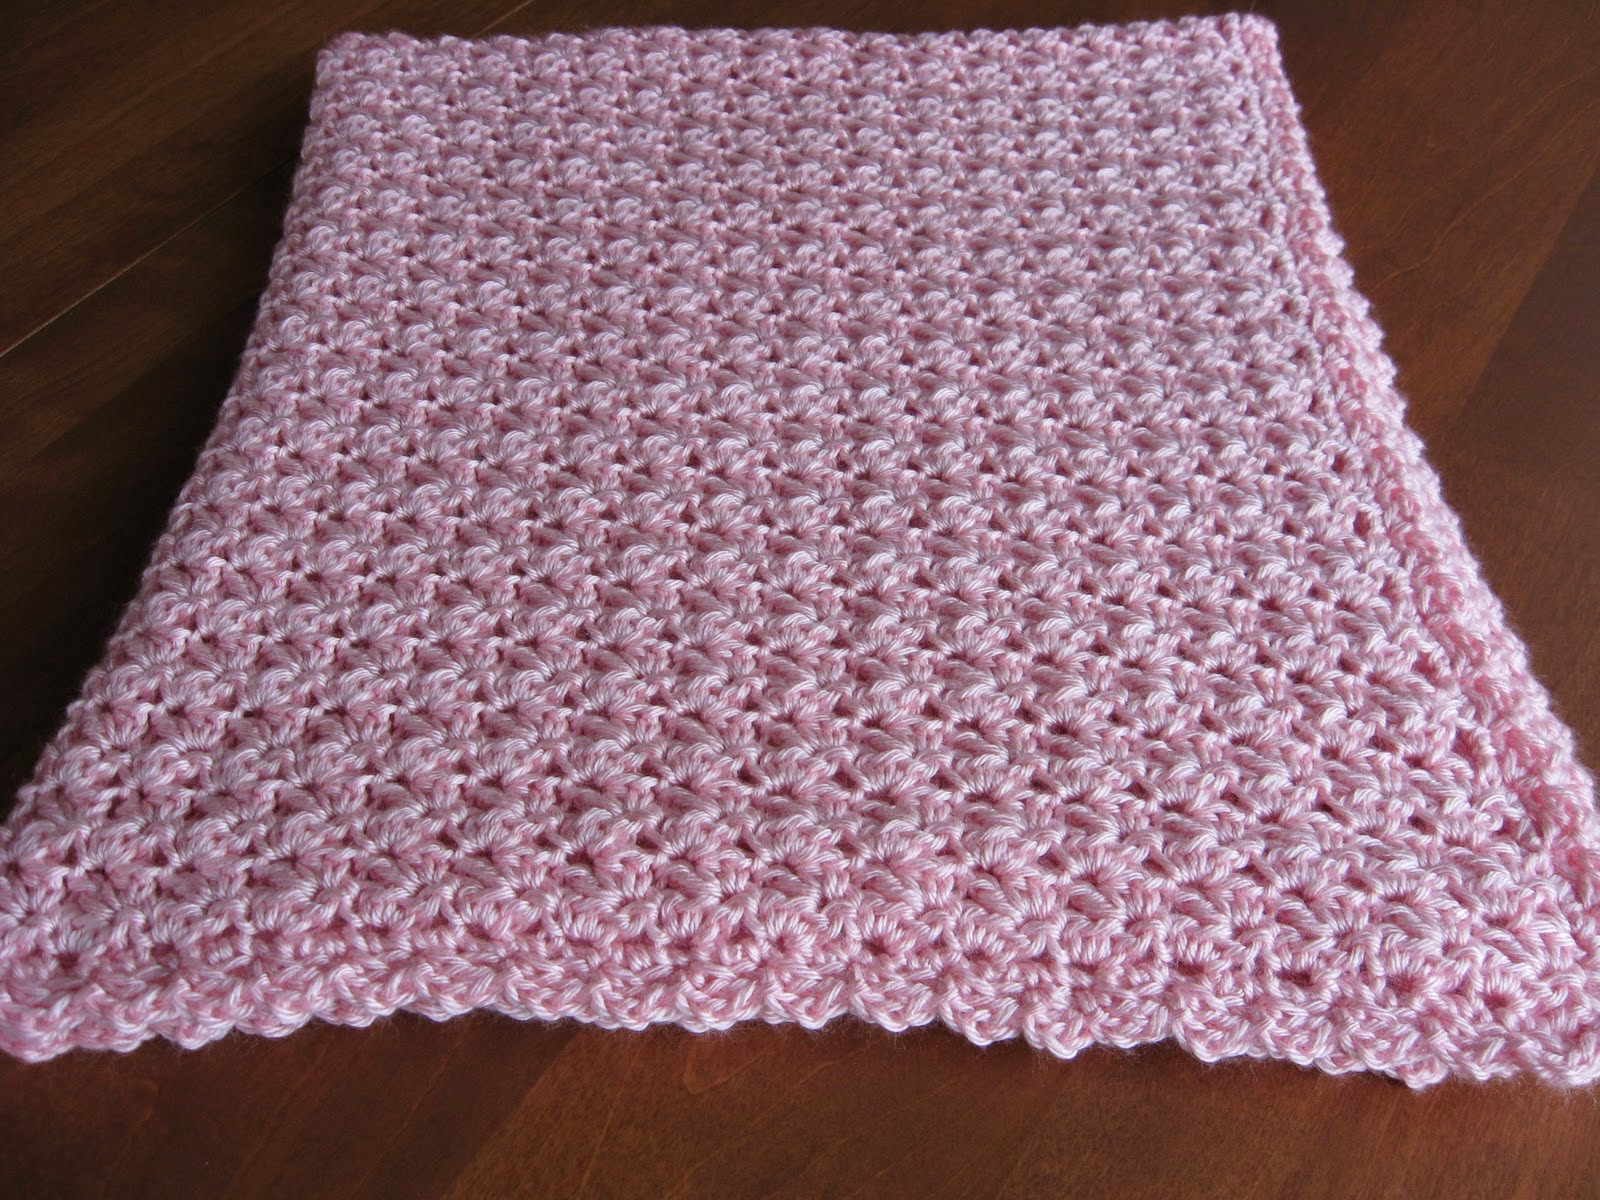 Crocheting Easy Baby Blanket : ... easy crochet baby blanket, quick and easy crochet baby blanket